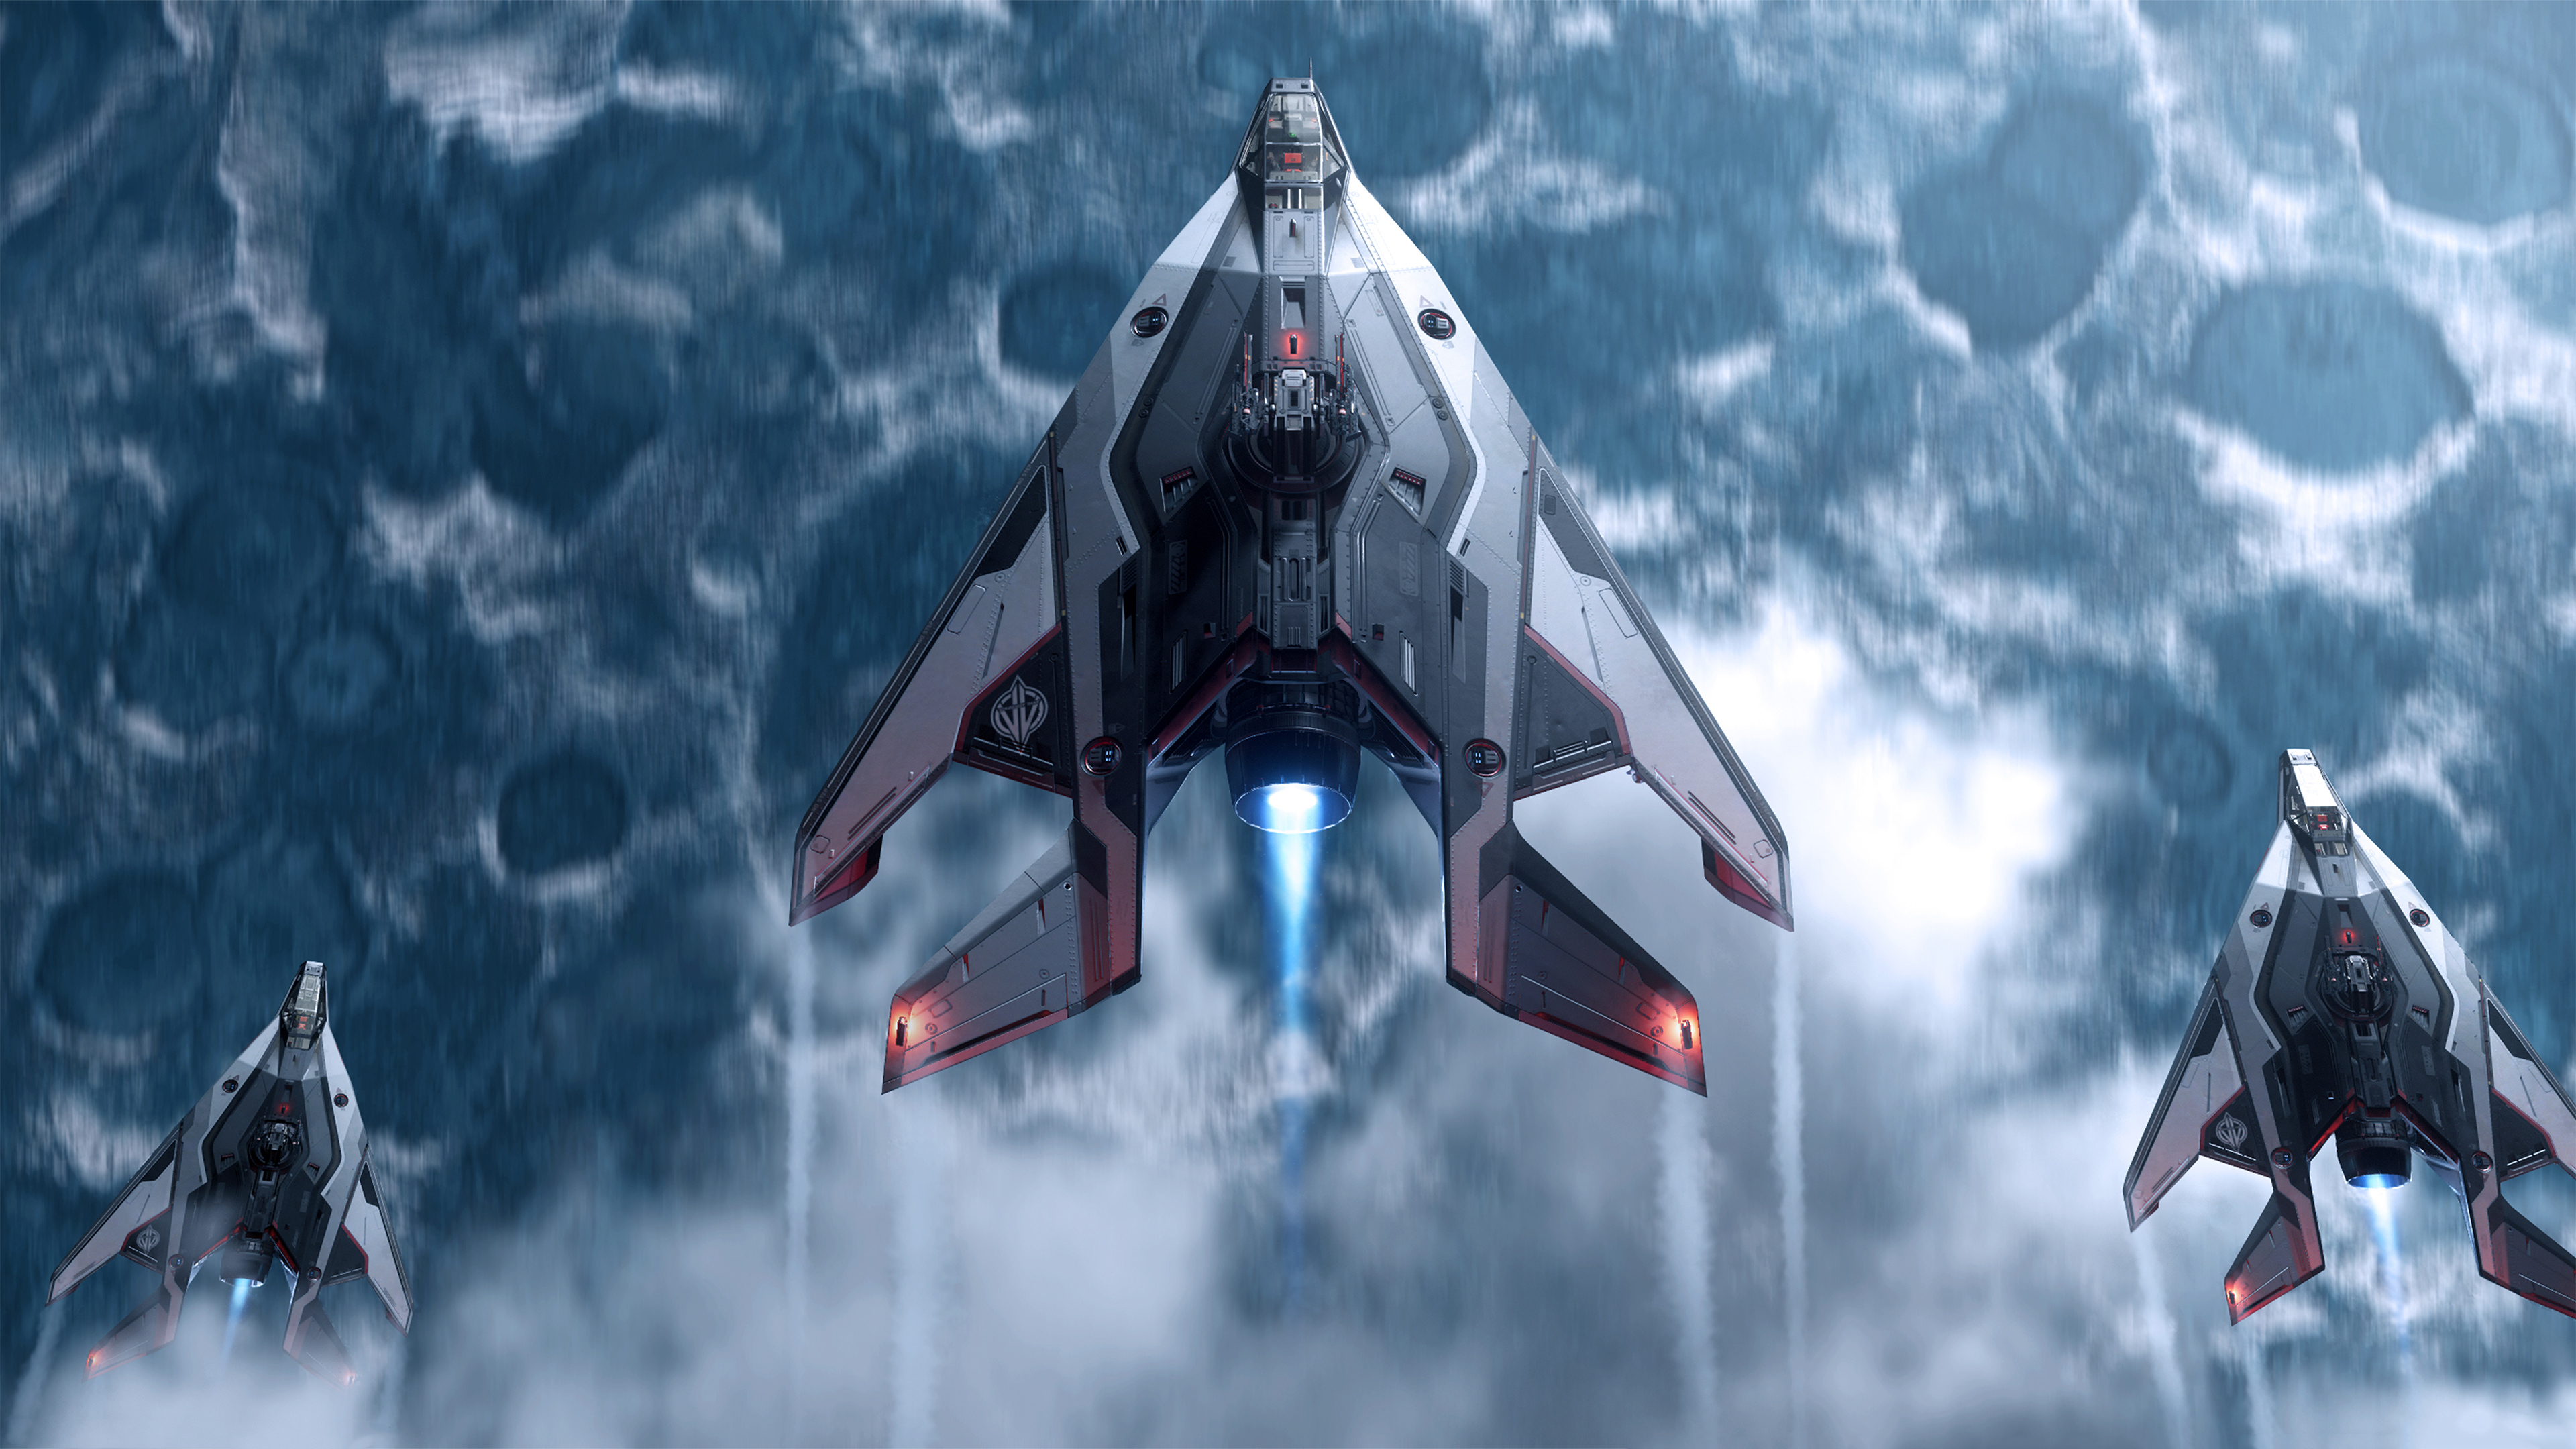 Star Citizen 2019 4k, HD Games, 4k Wallpapers, Images ...